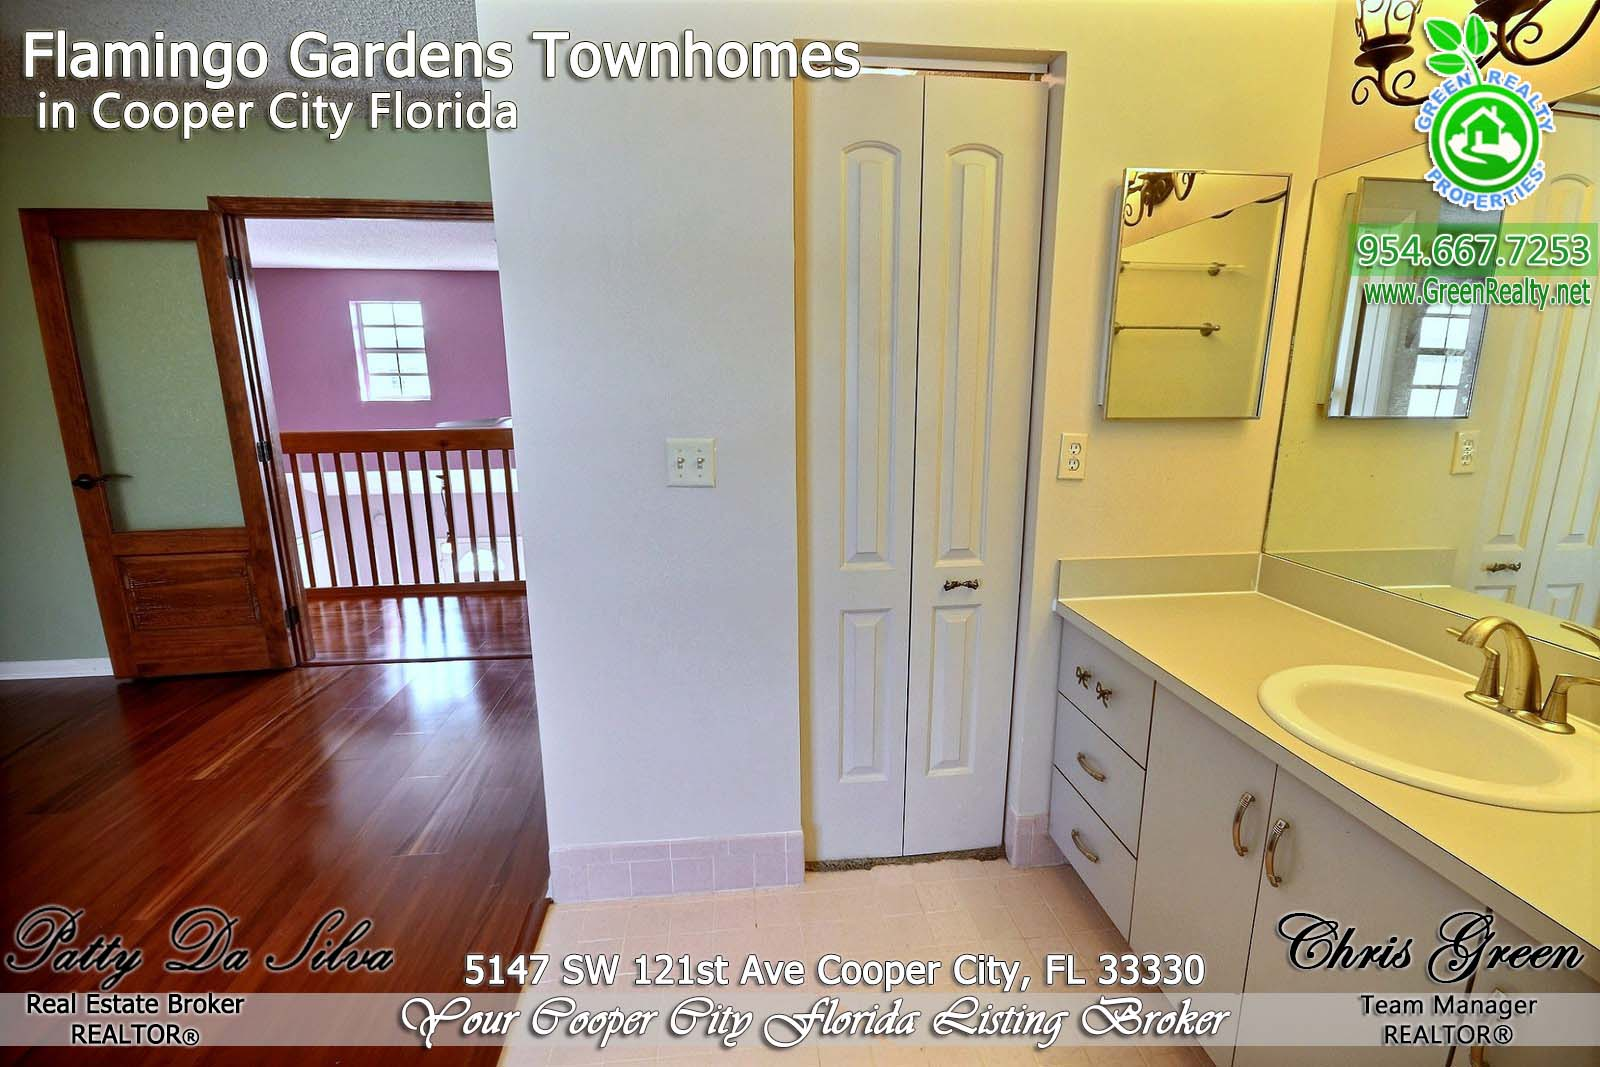 23 Flamingo Gardens Townhomes For Sale (5)